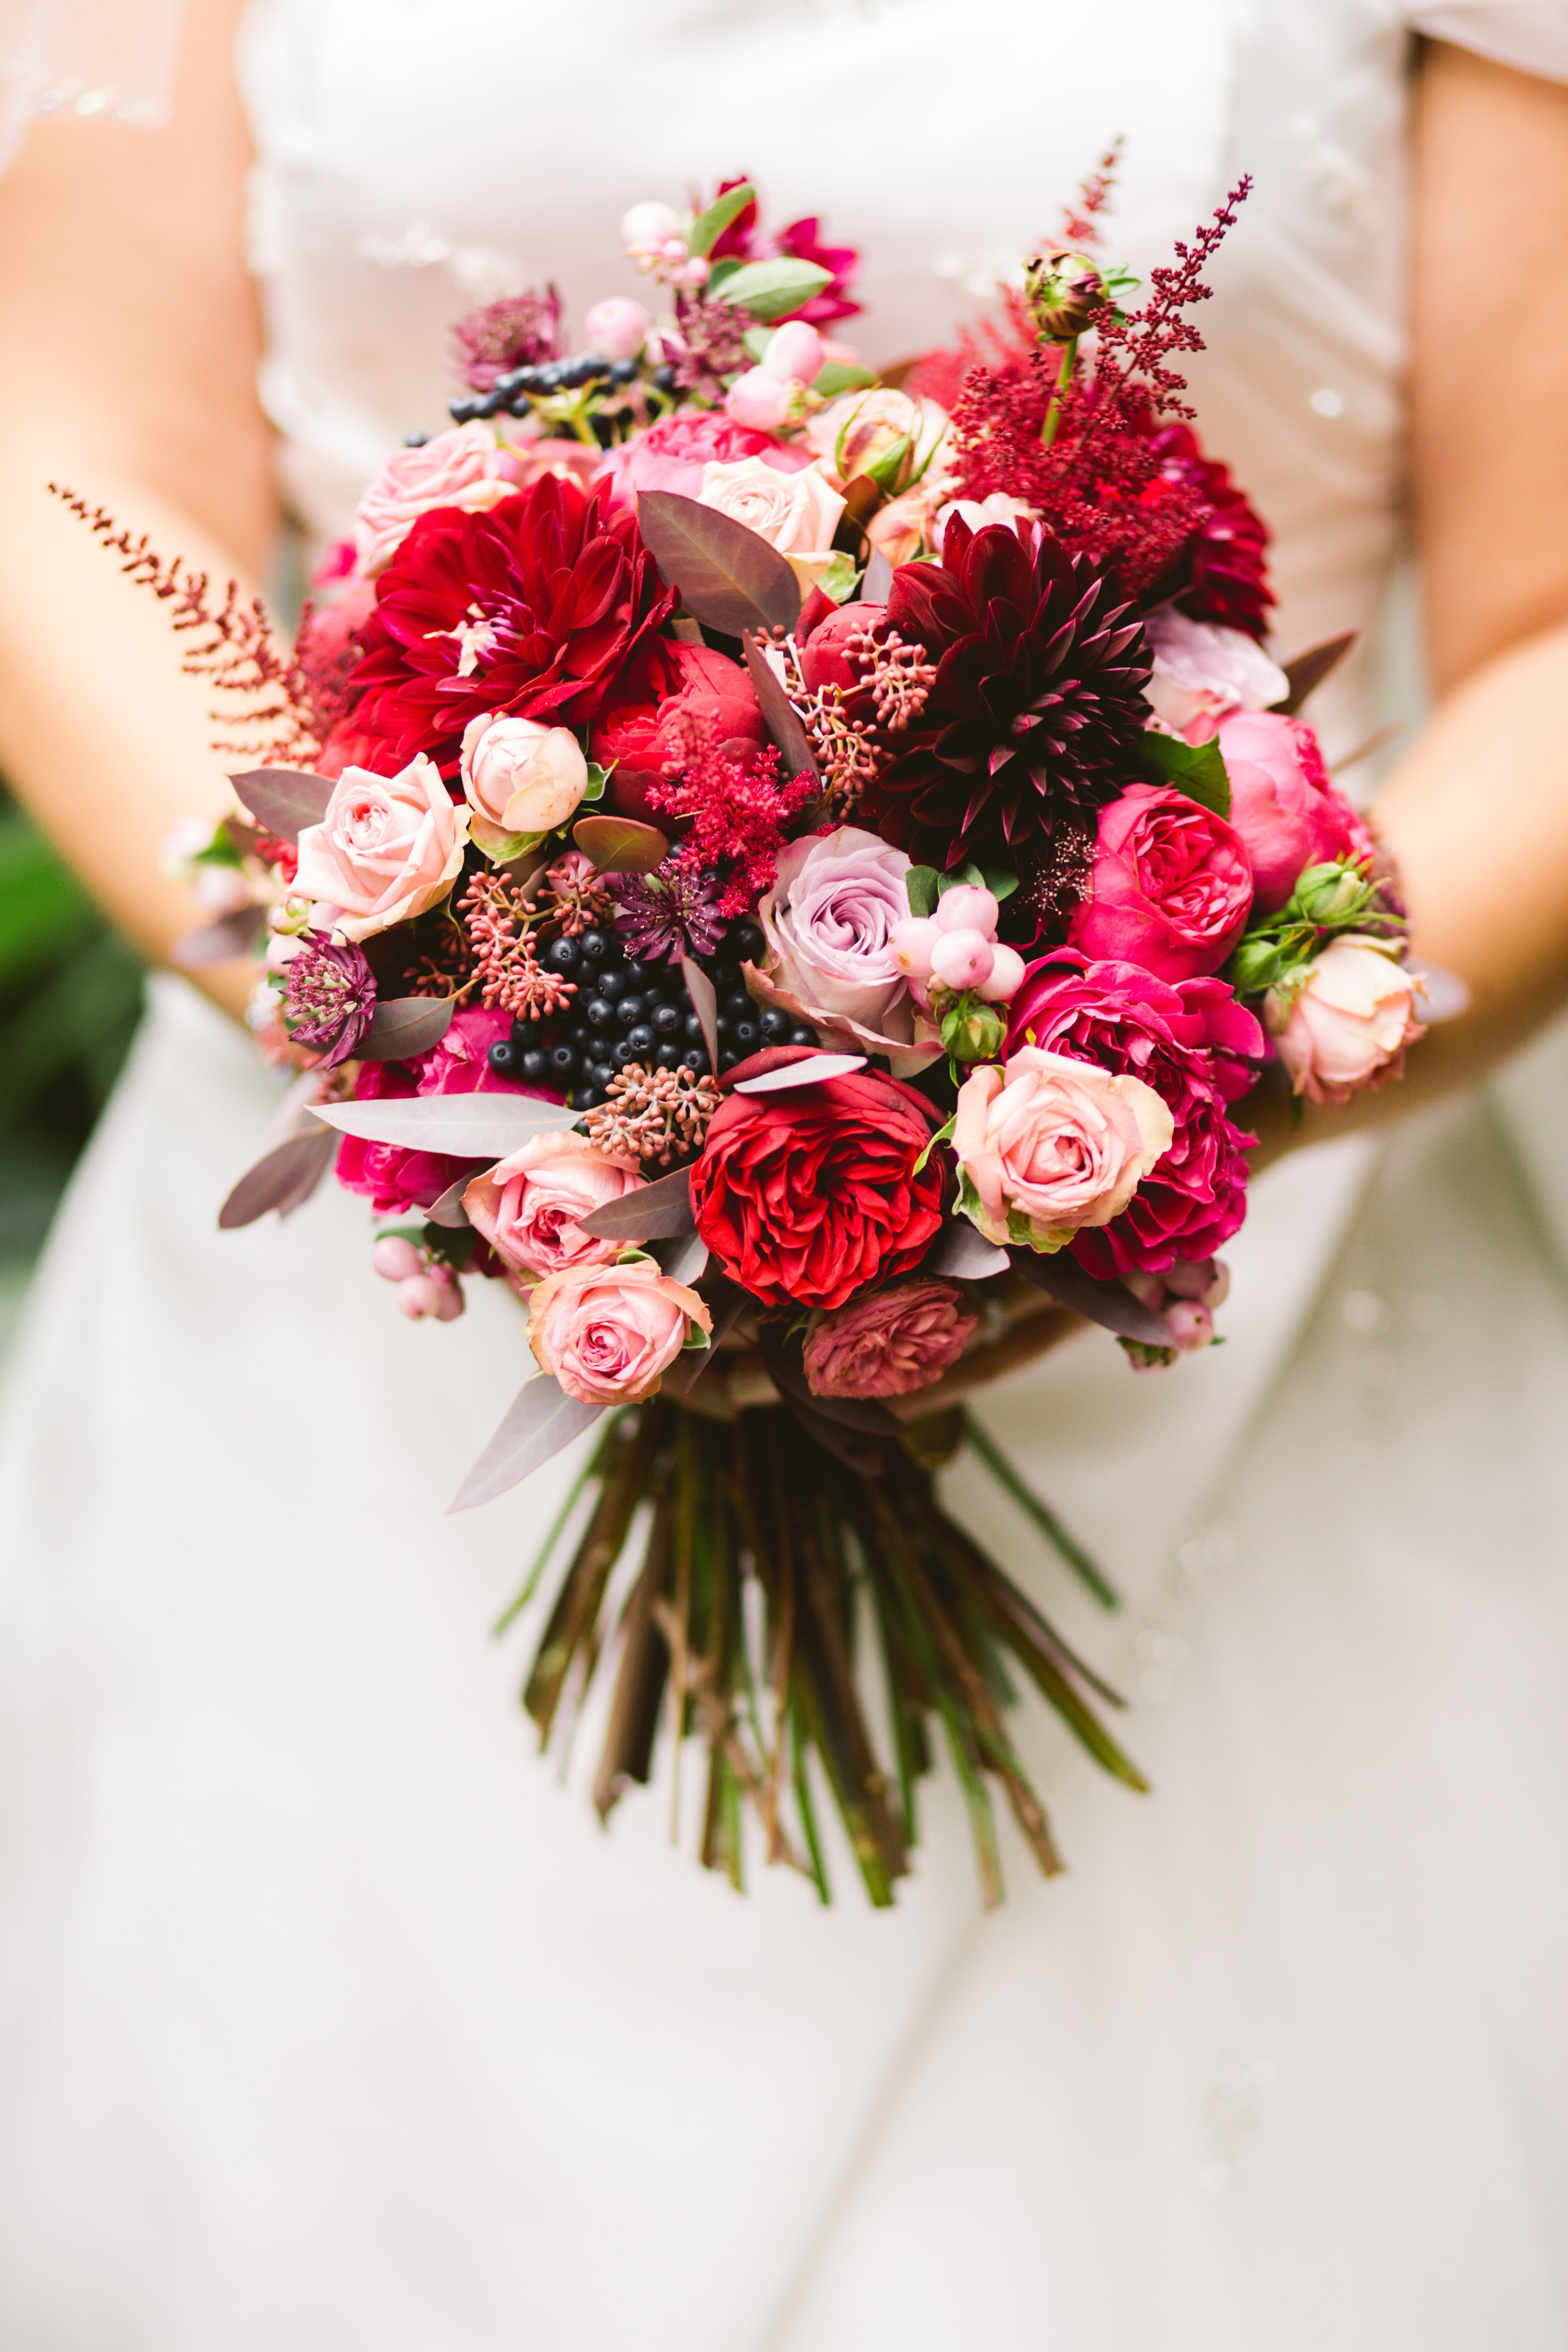 I hated to see the flower bouquet in Mary's hand | Photo: Unsplash